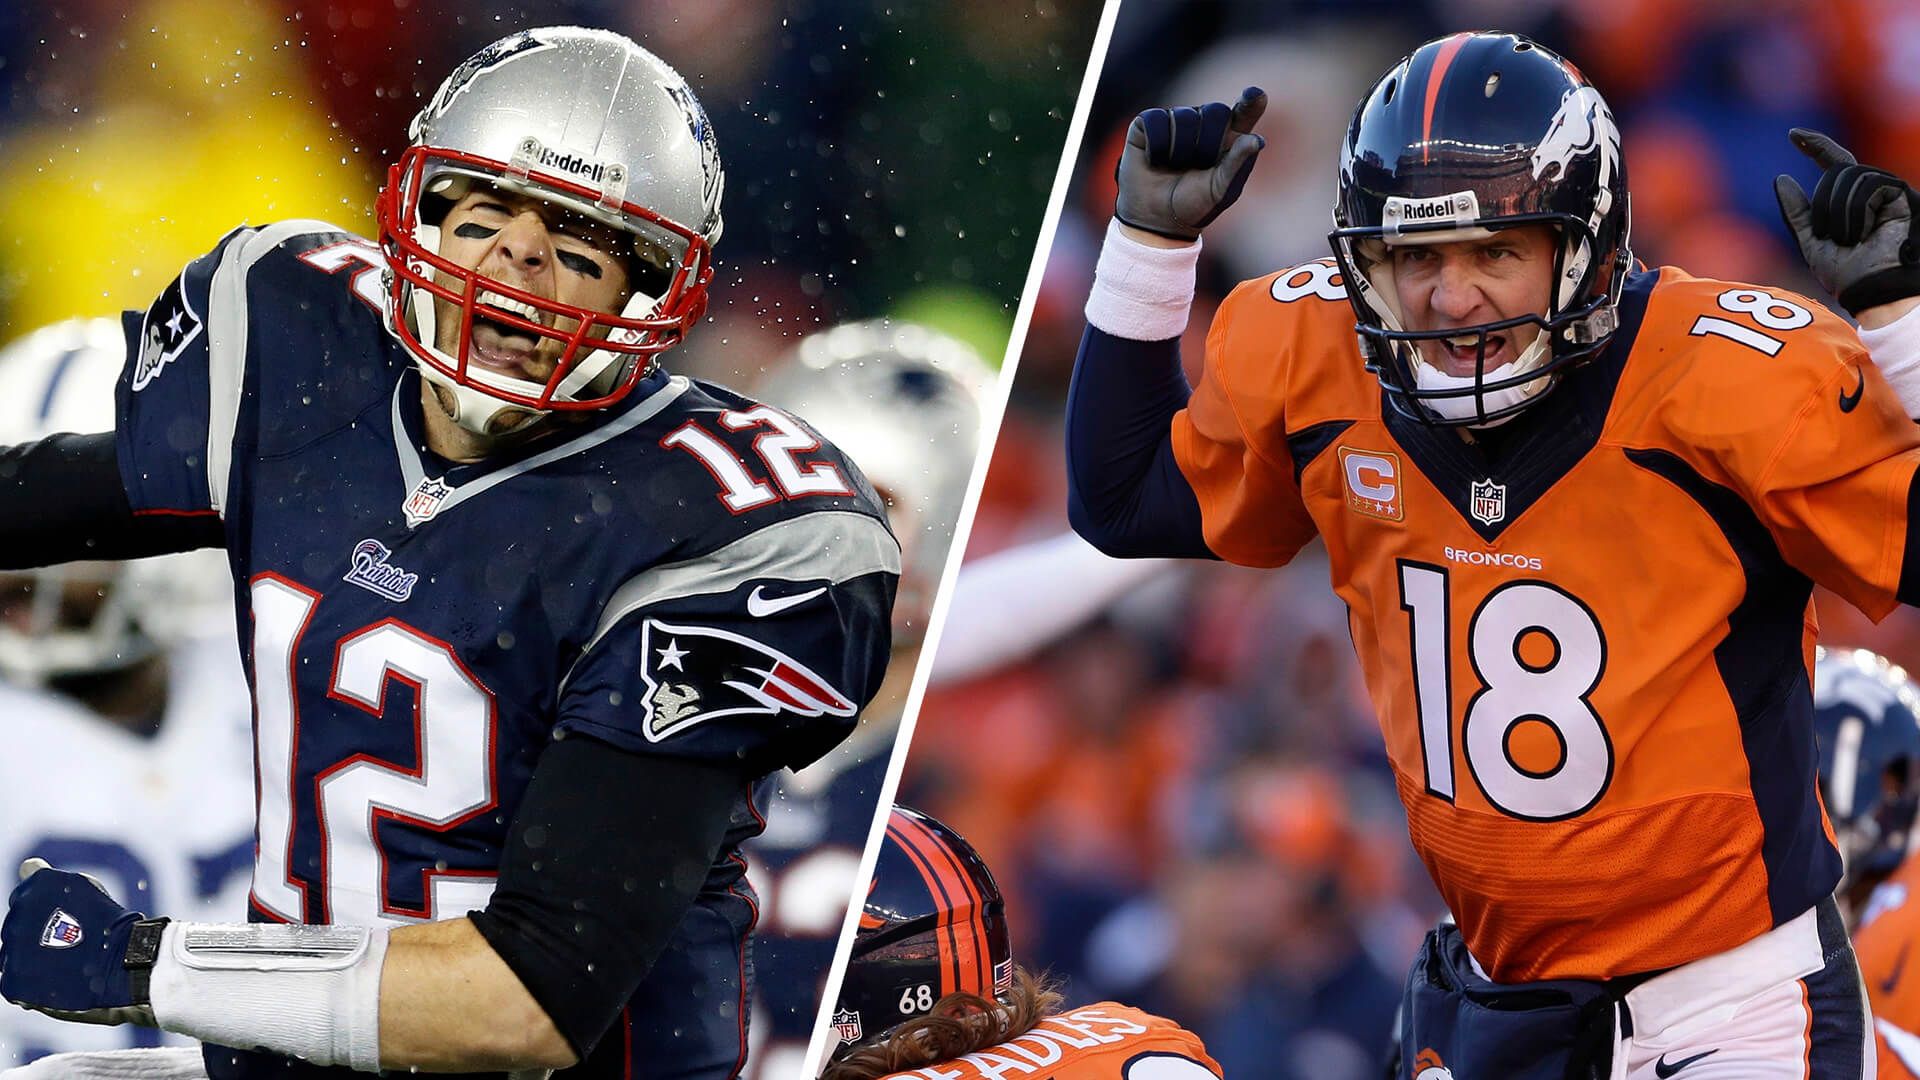 Who's Worth More: Tom Brady or Peyton Manning, Phil Mickelson or Tiger Woods?